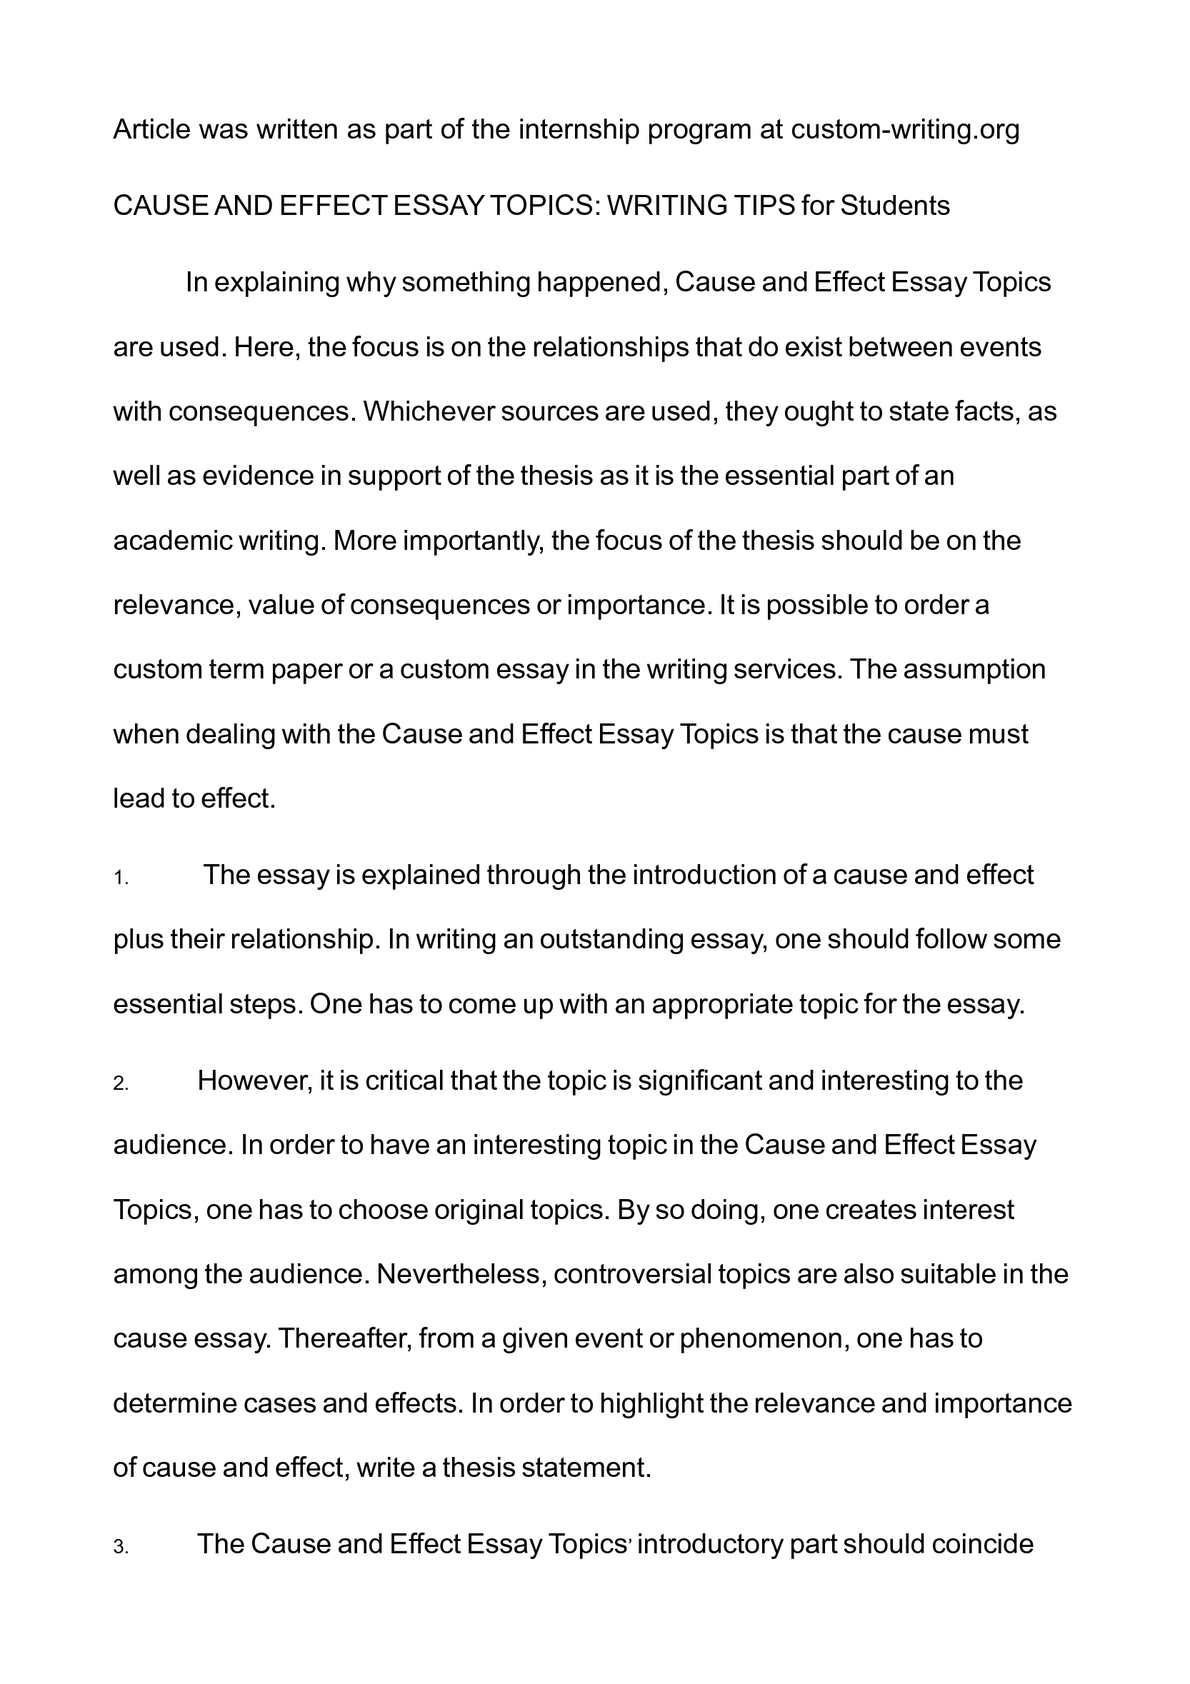 002 Essay Example P1 Cause And Effect Exceptional Topics Middle School Good For College Full